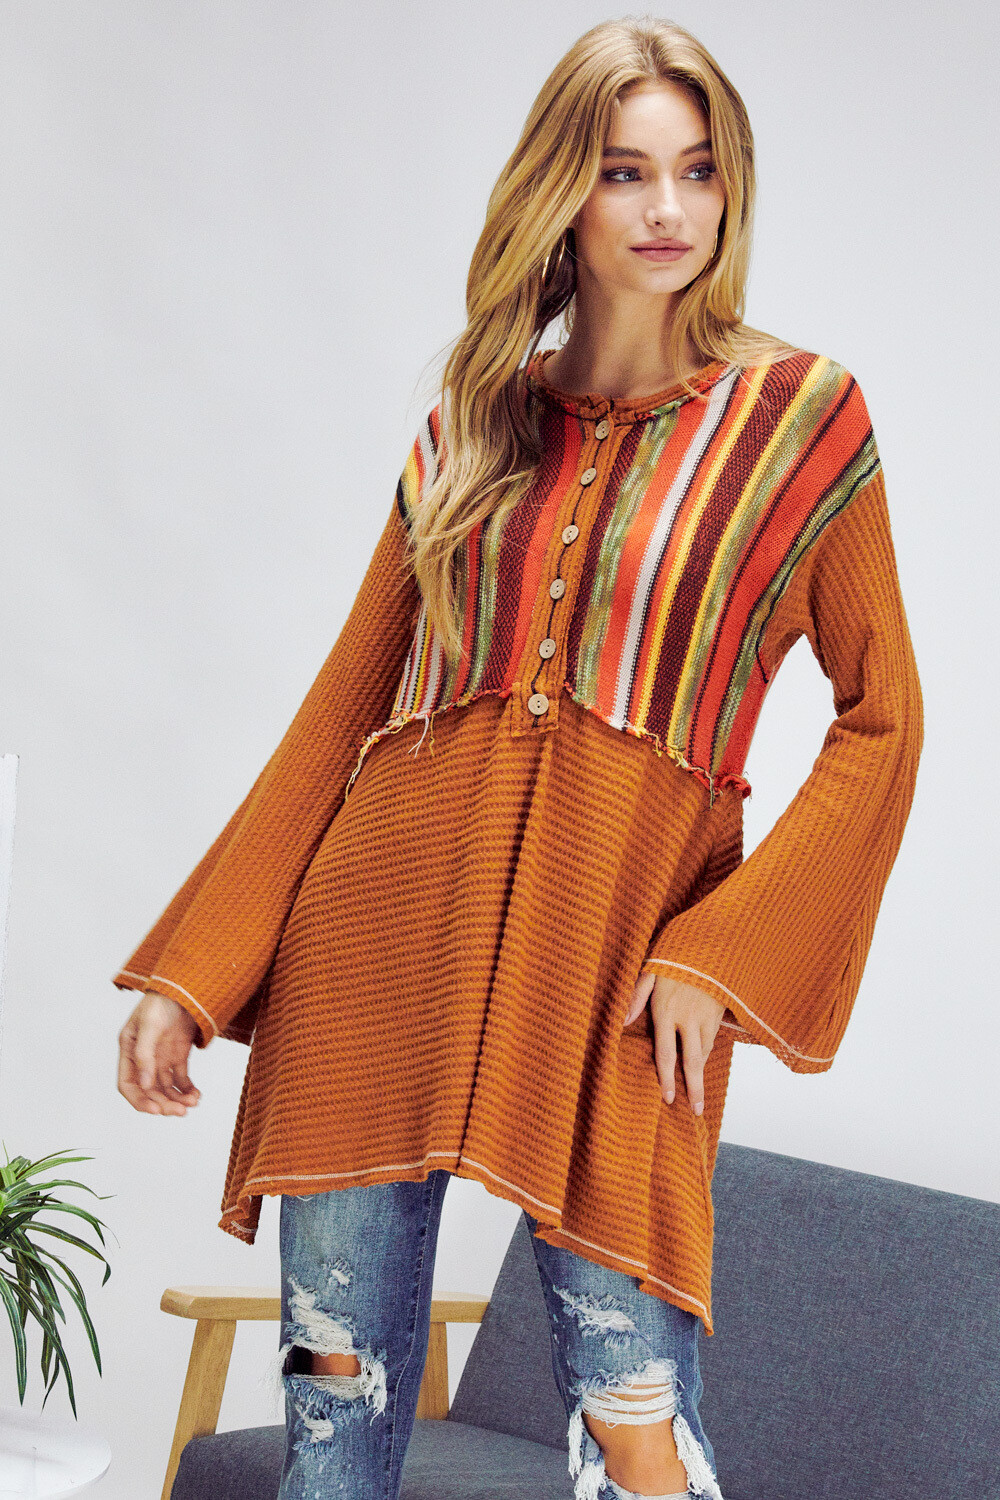 Hippie Bell Sleeve Top - L to S